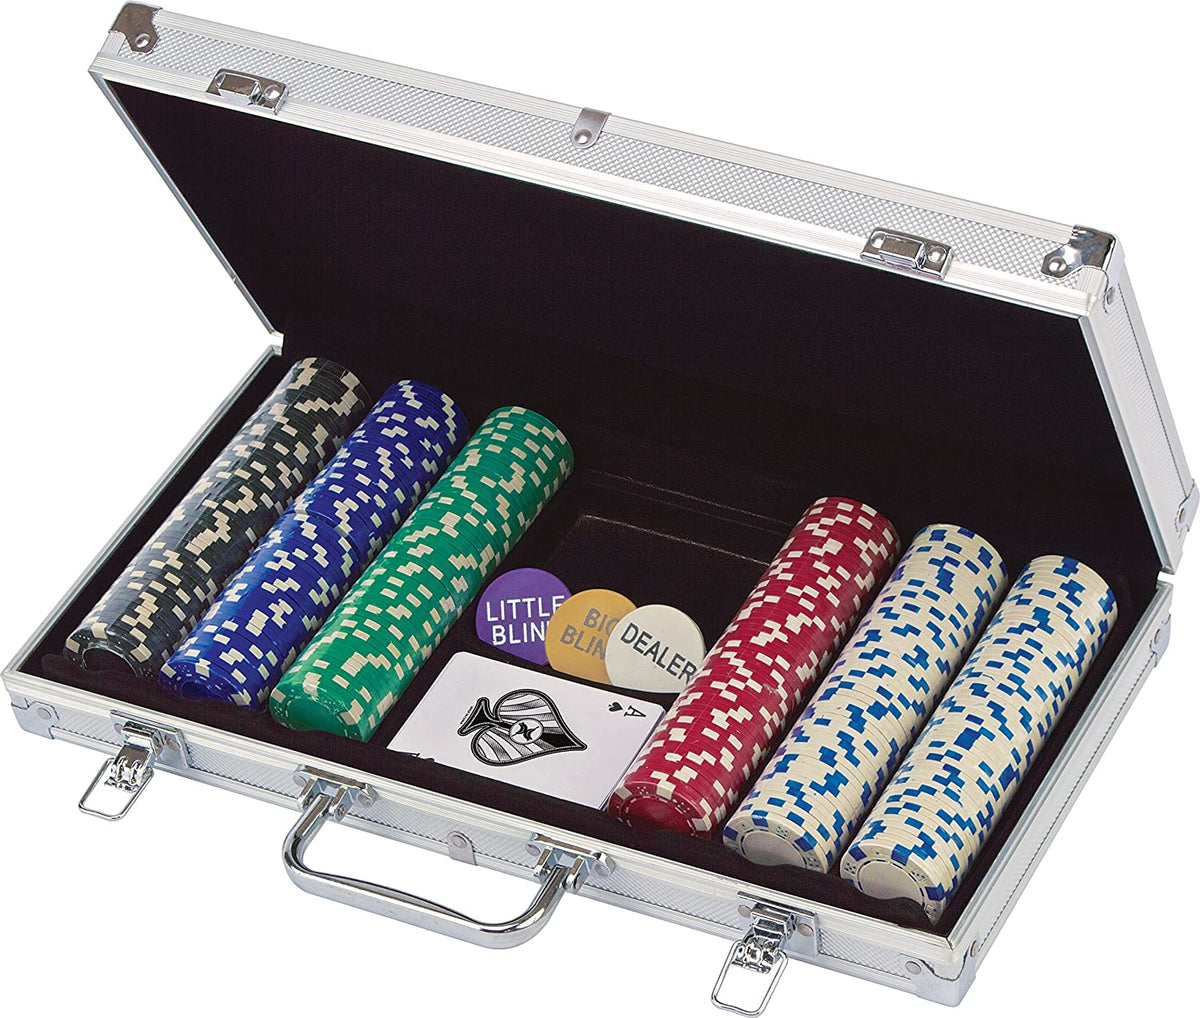 300pc Poker Set Curbside Only Playful Minds